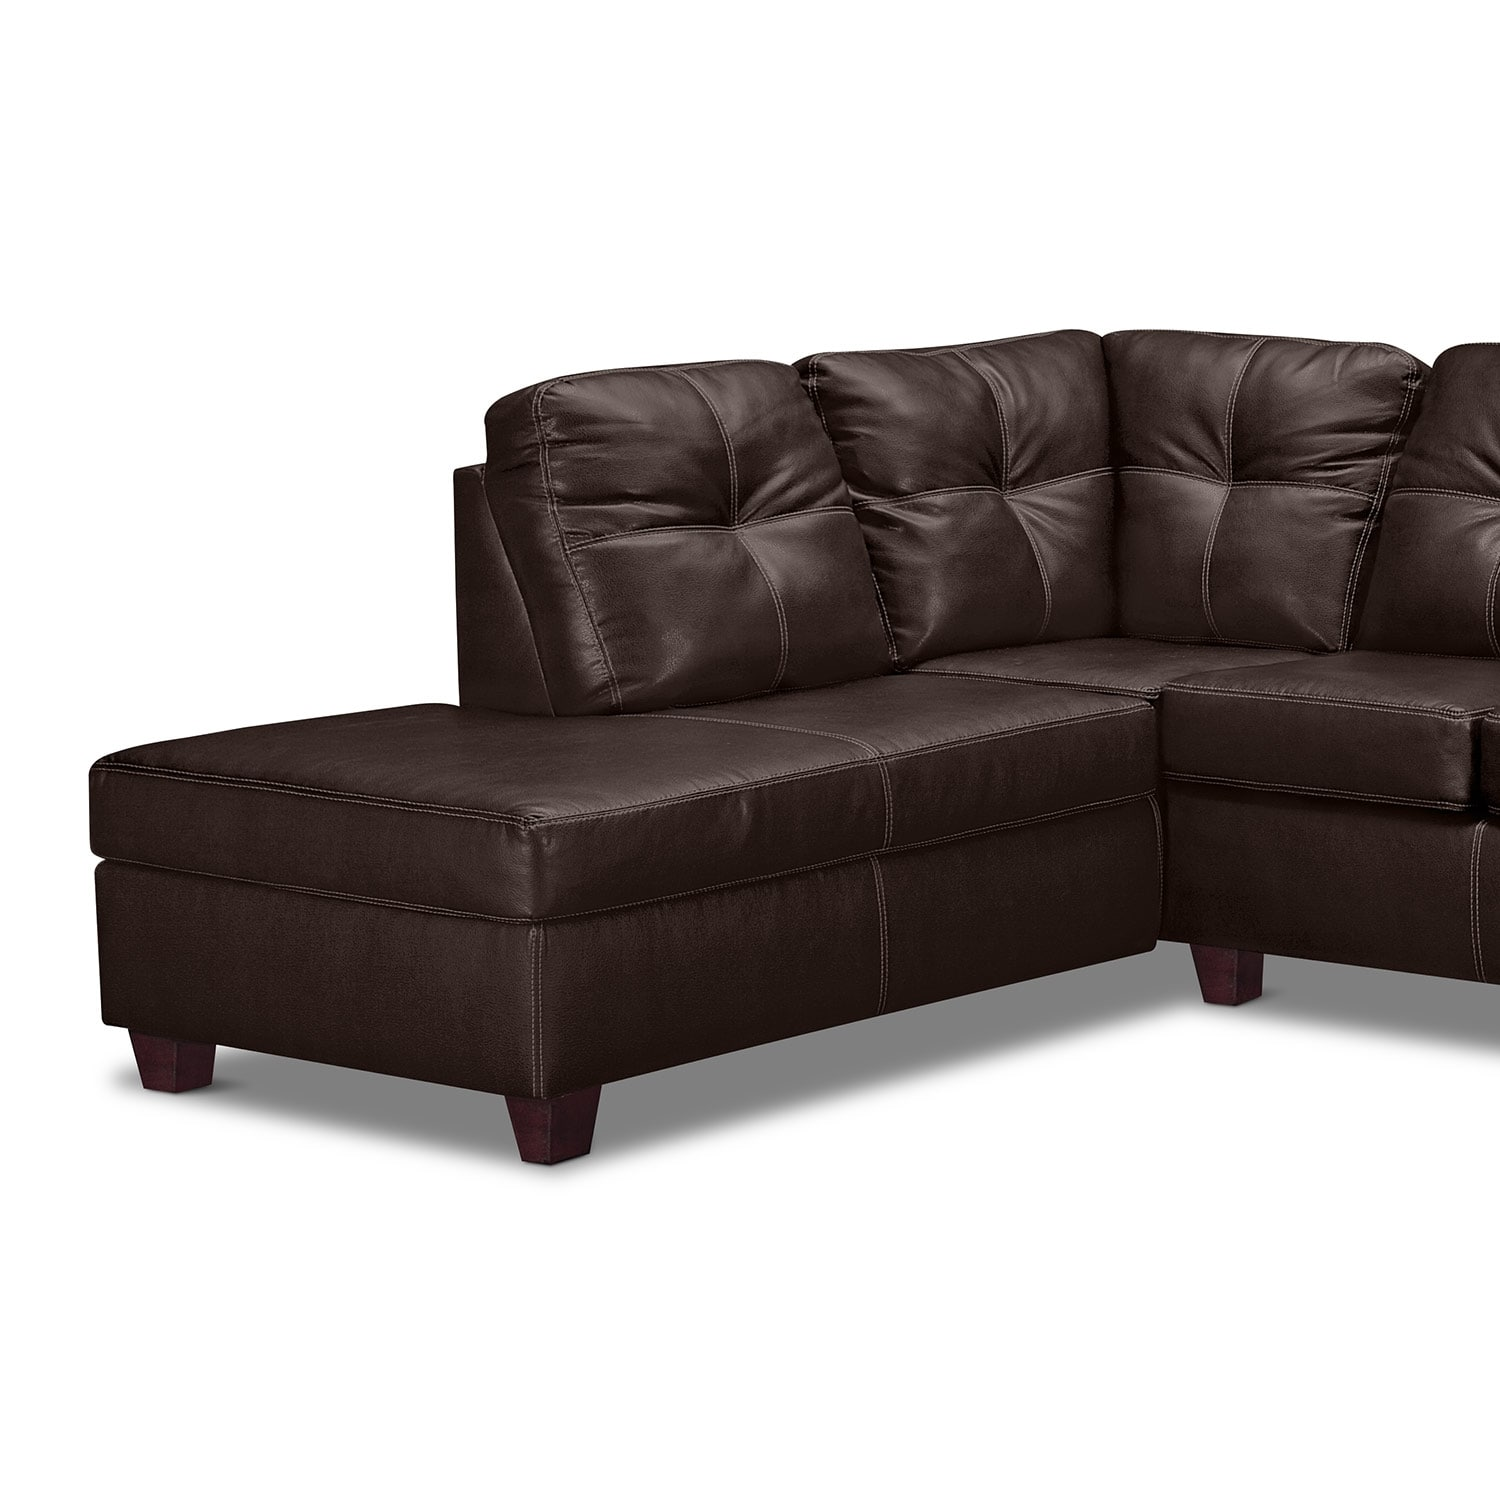 Ricardo 2 piece sectional with left facing chaise brown for Brown sectionals with chaise